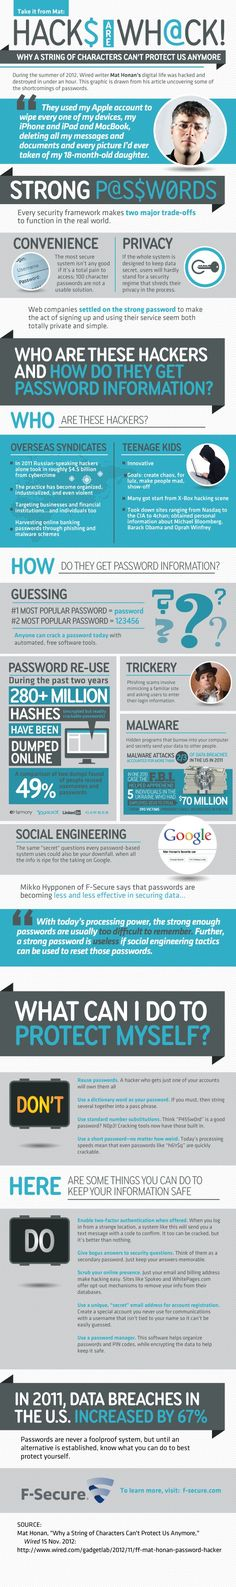 Hacking lessons learned: how to cover your digital ass [Infographic]